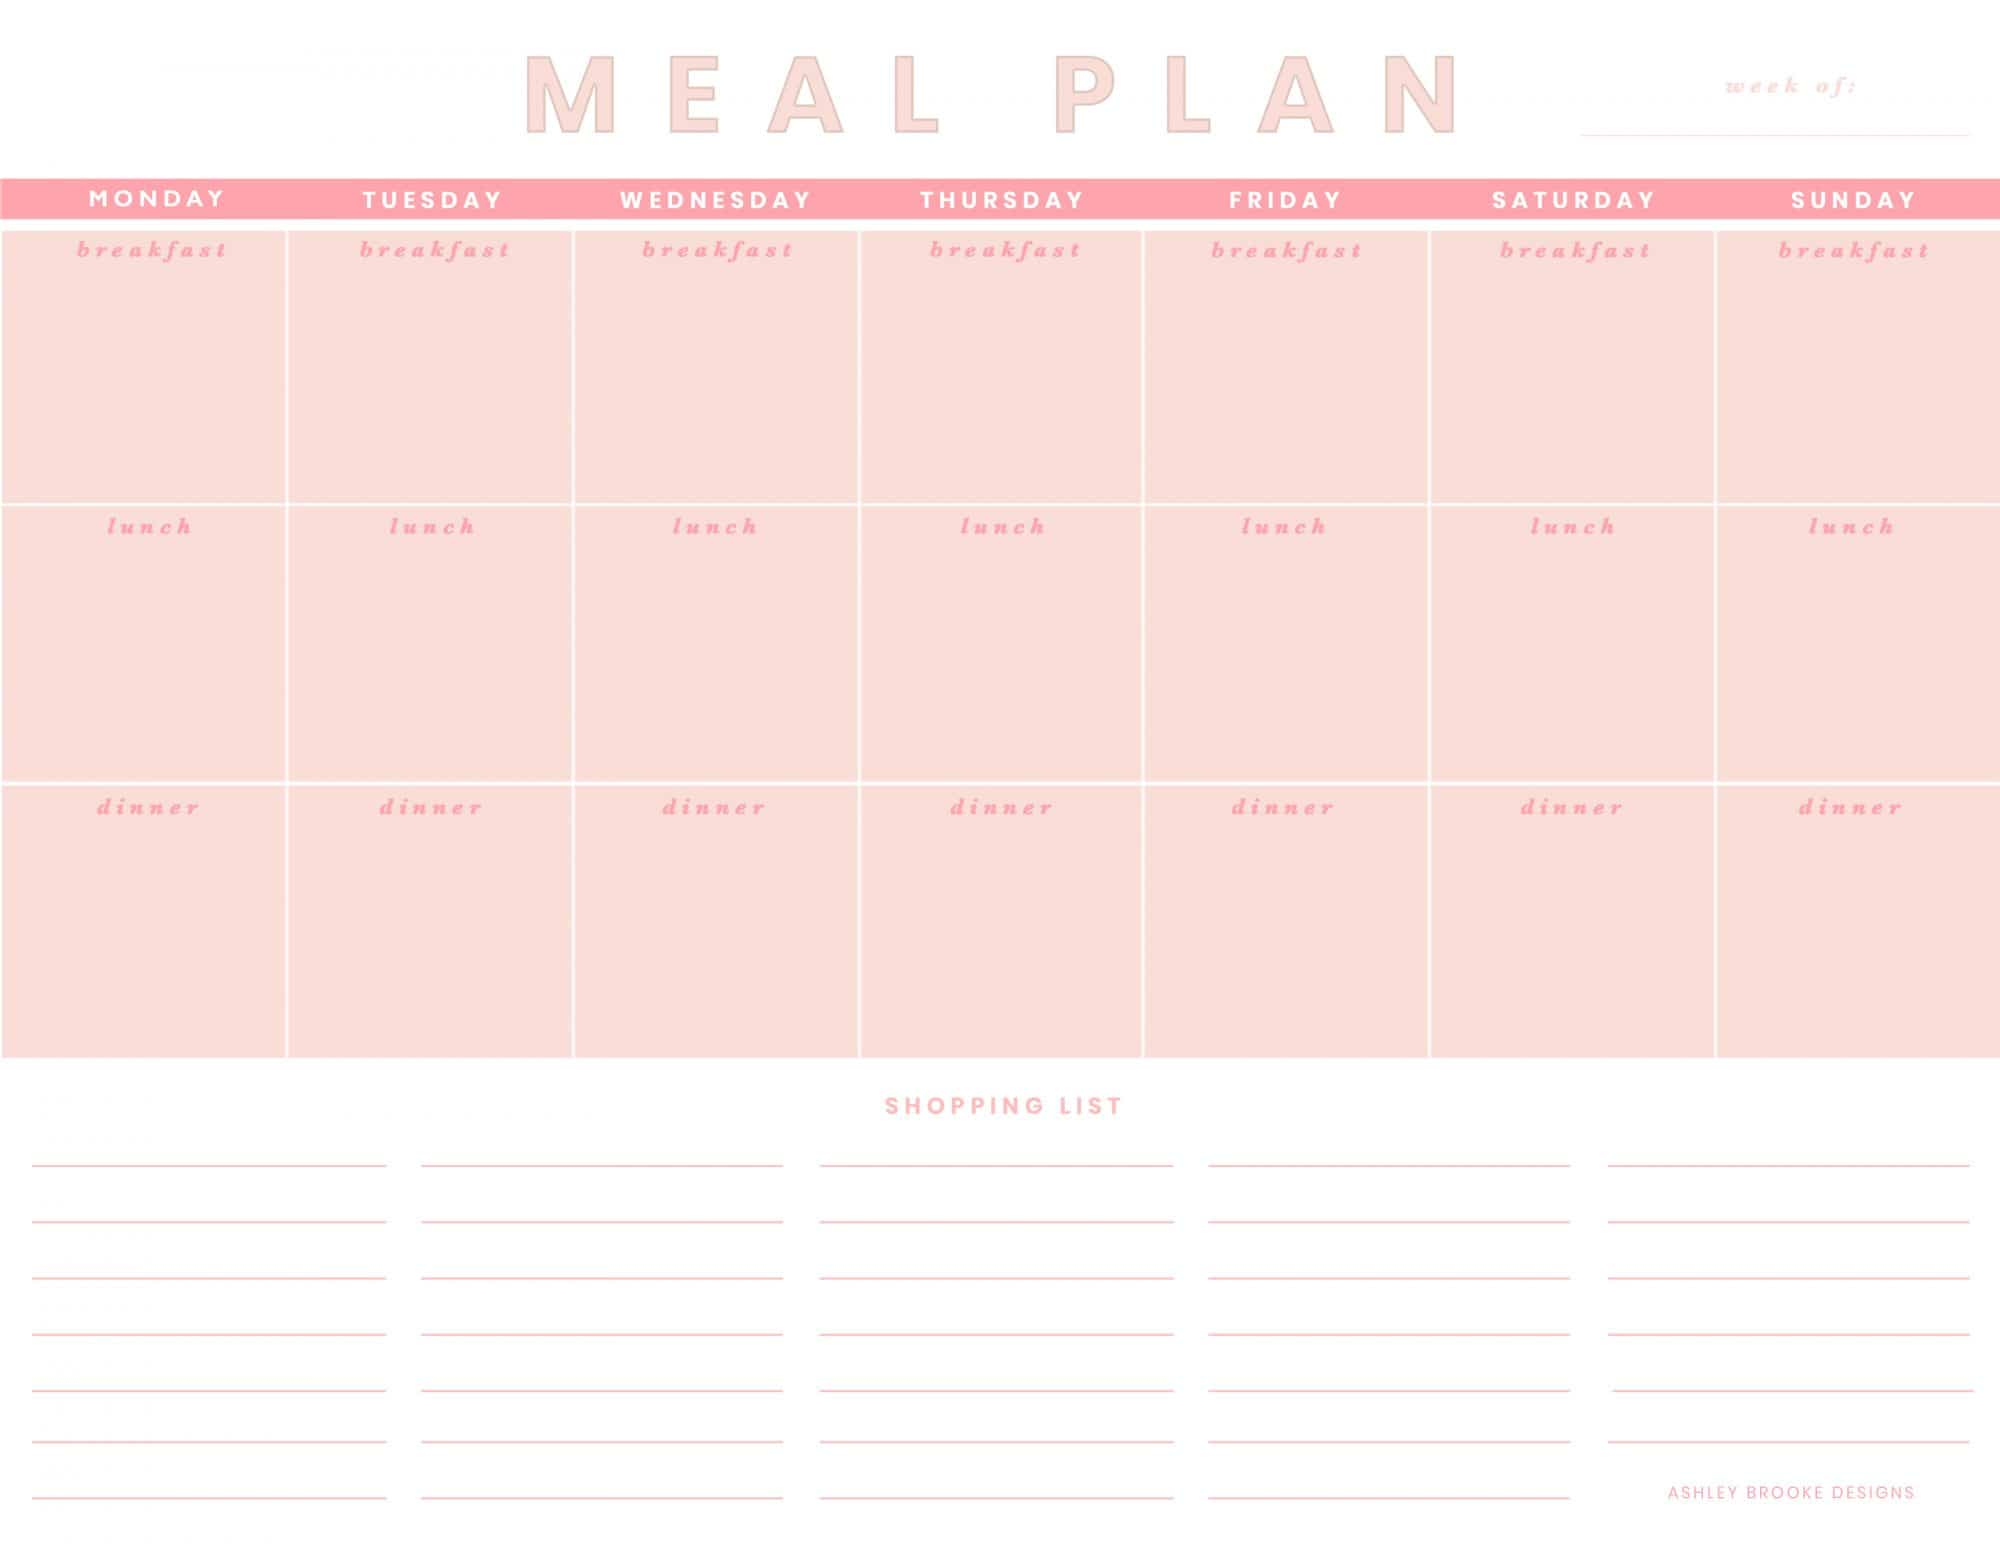 Meal prepping made easy - Free Download | www.ashleybrookedesigns.com